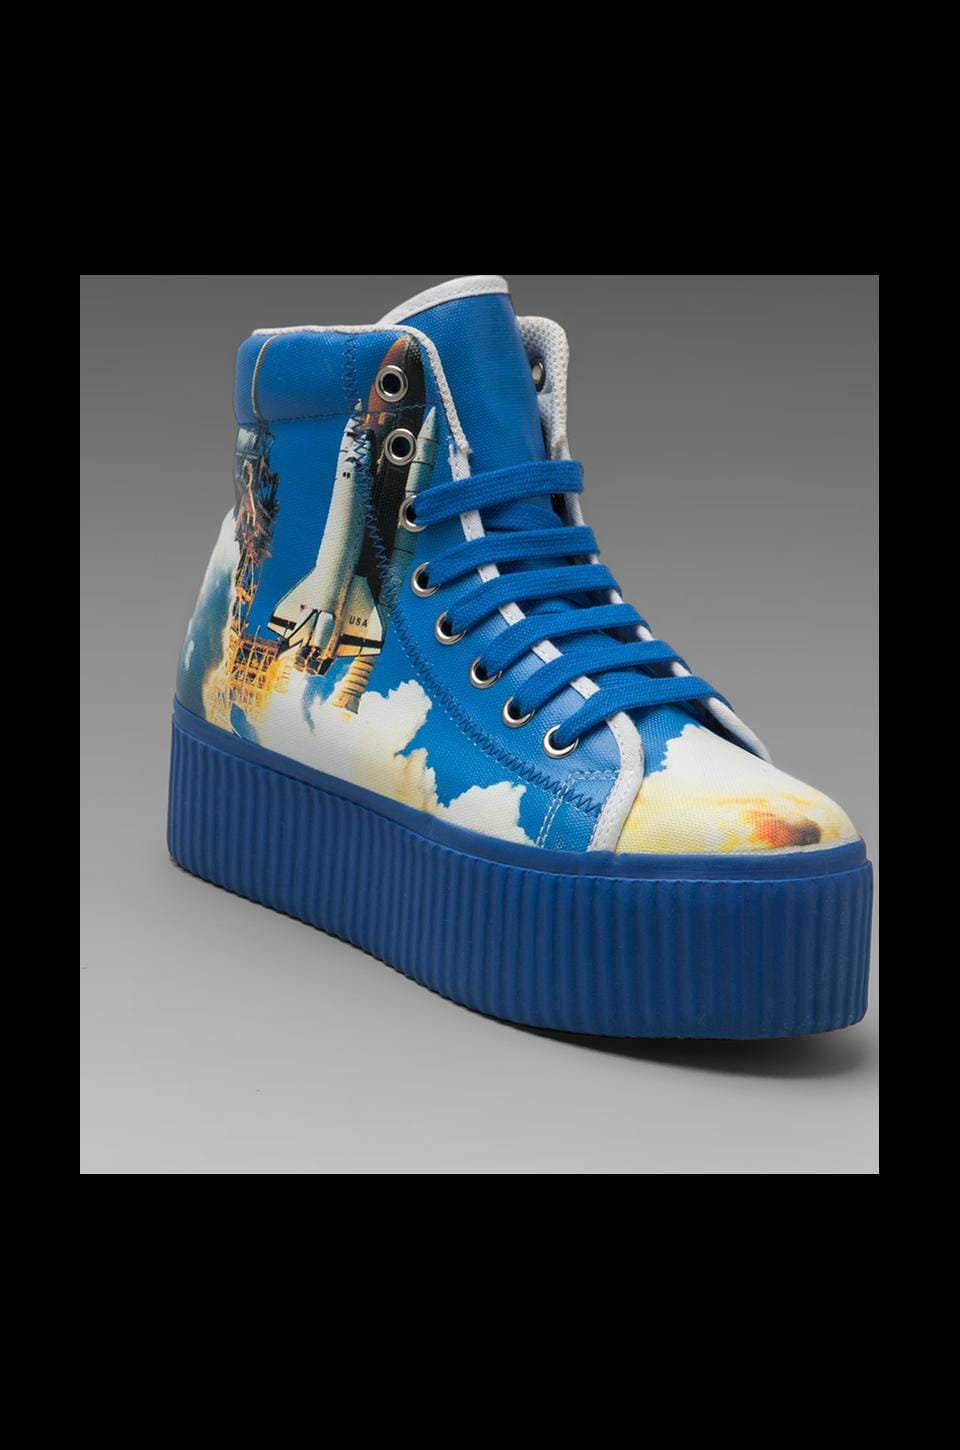 Jeffrey Campbell Hiya Hi-Top Sneaker in Shuttle